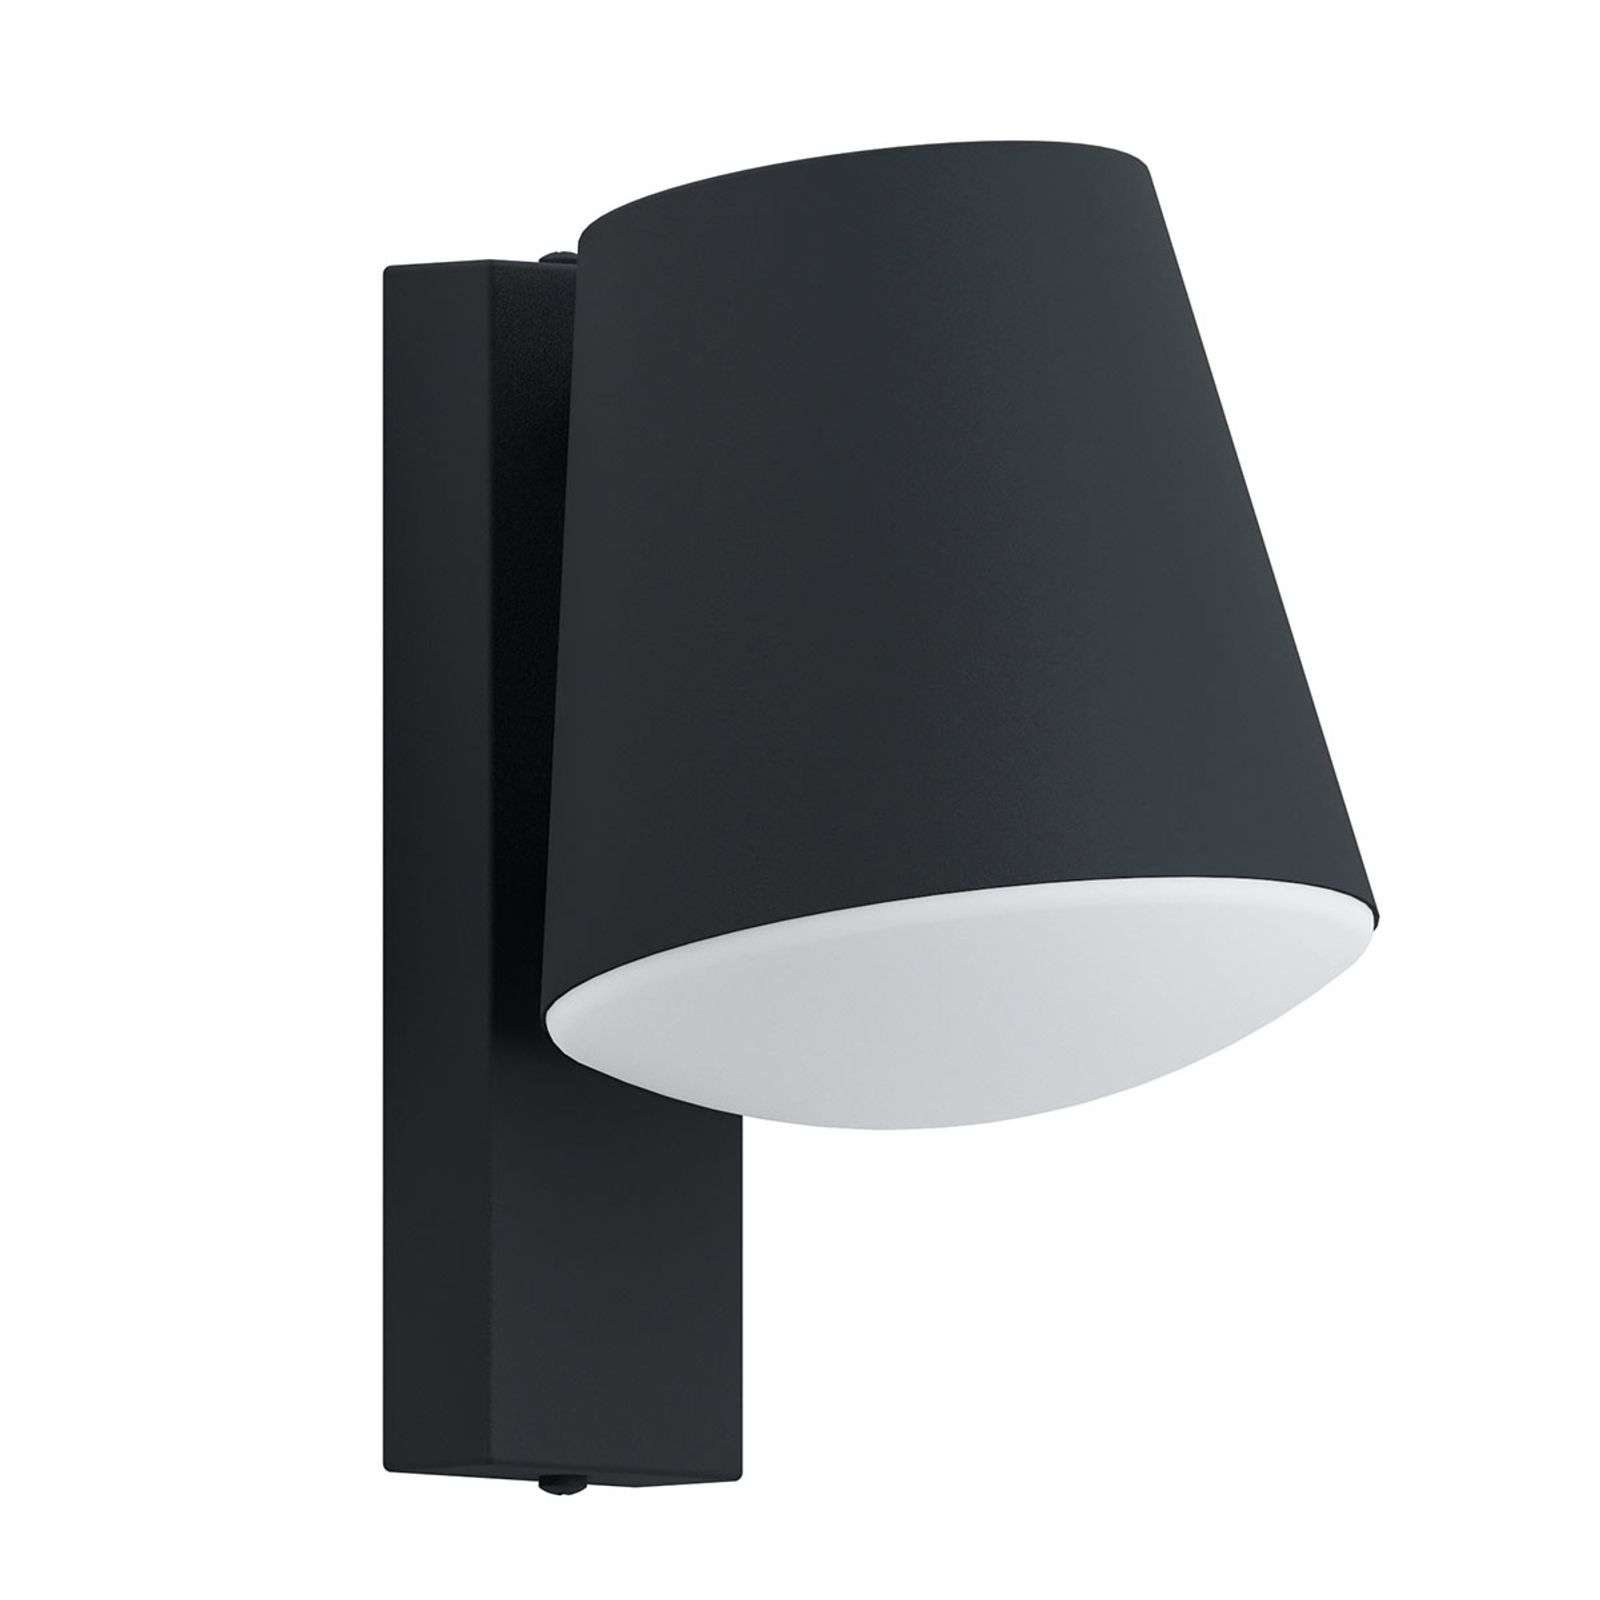 EGLO connect Caldiero-C LED wandlamp antraciet